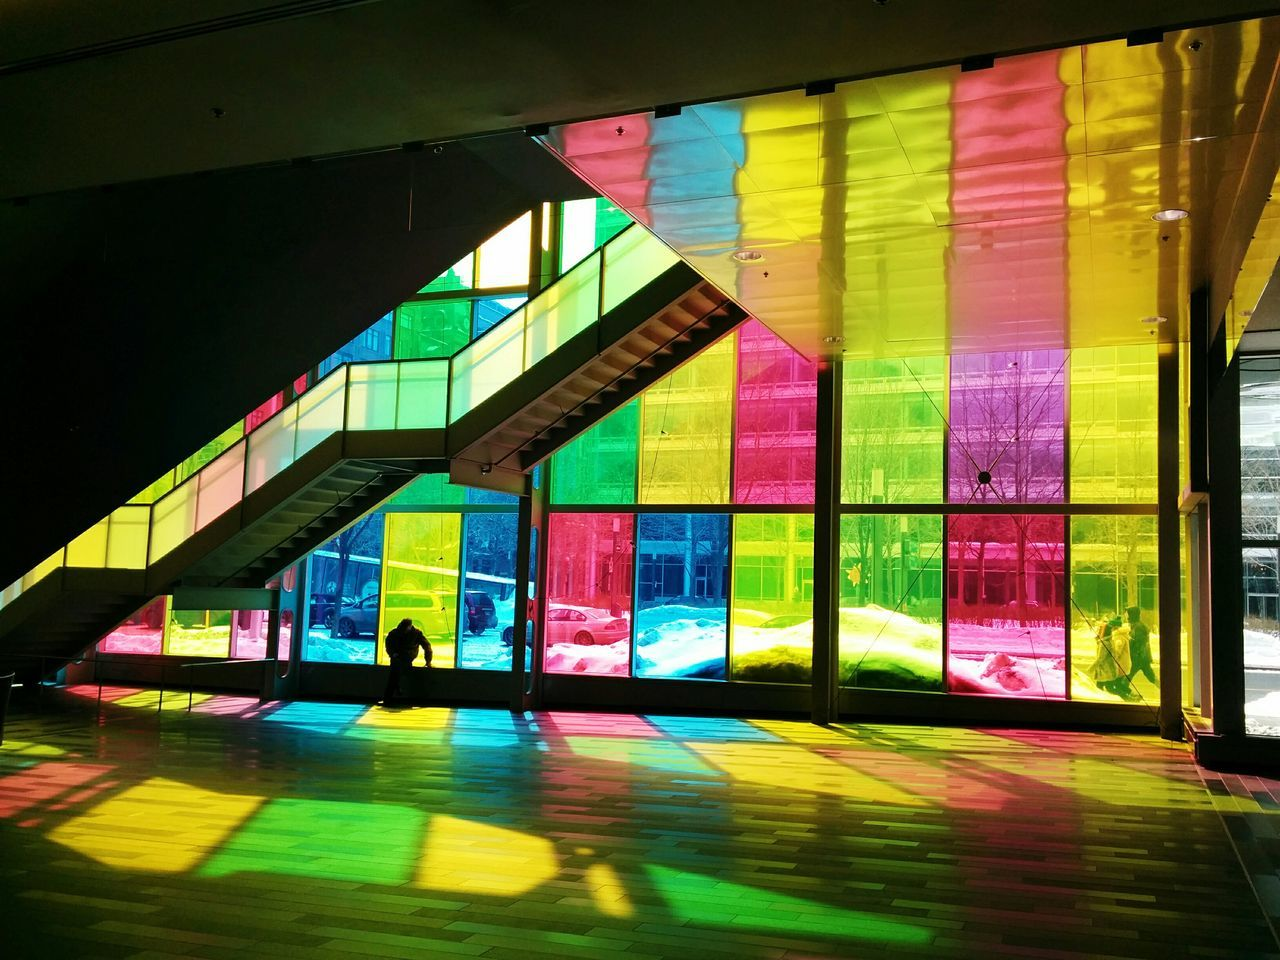 Interior of building with multi colored windows